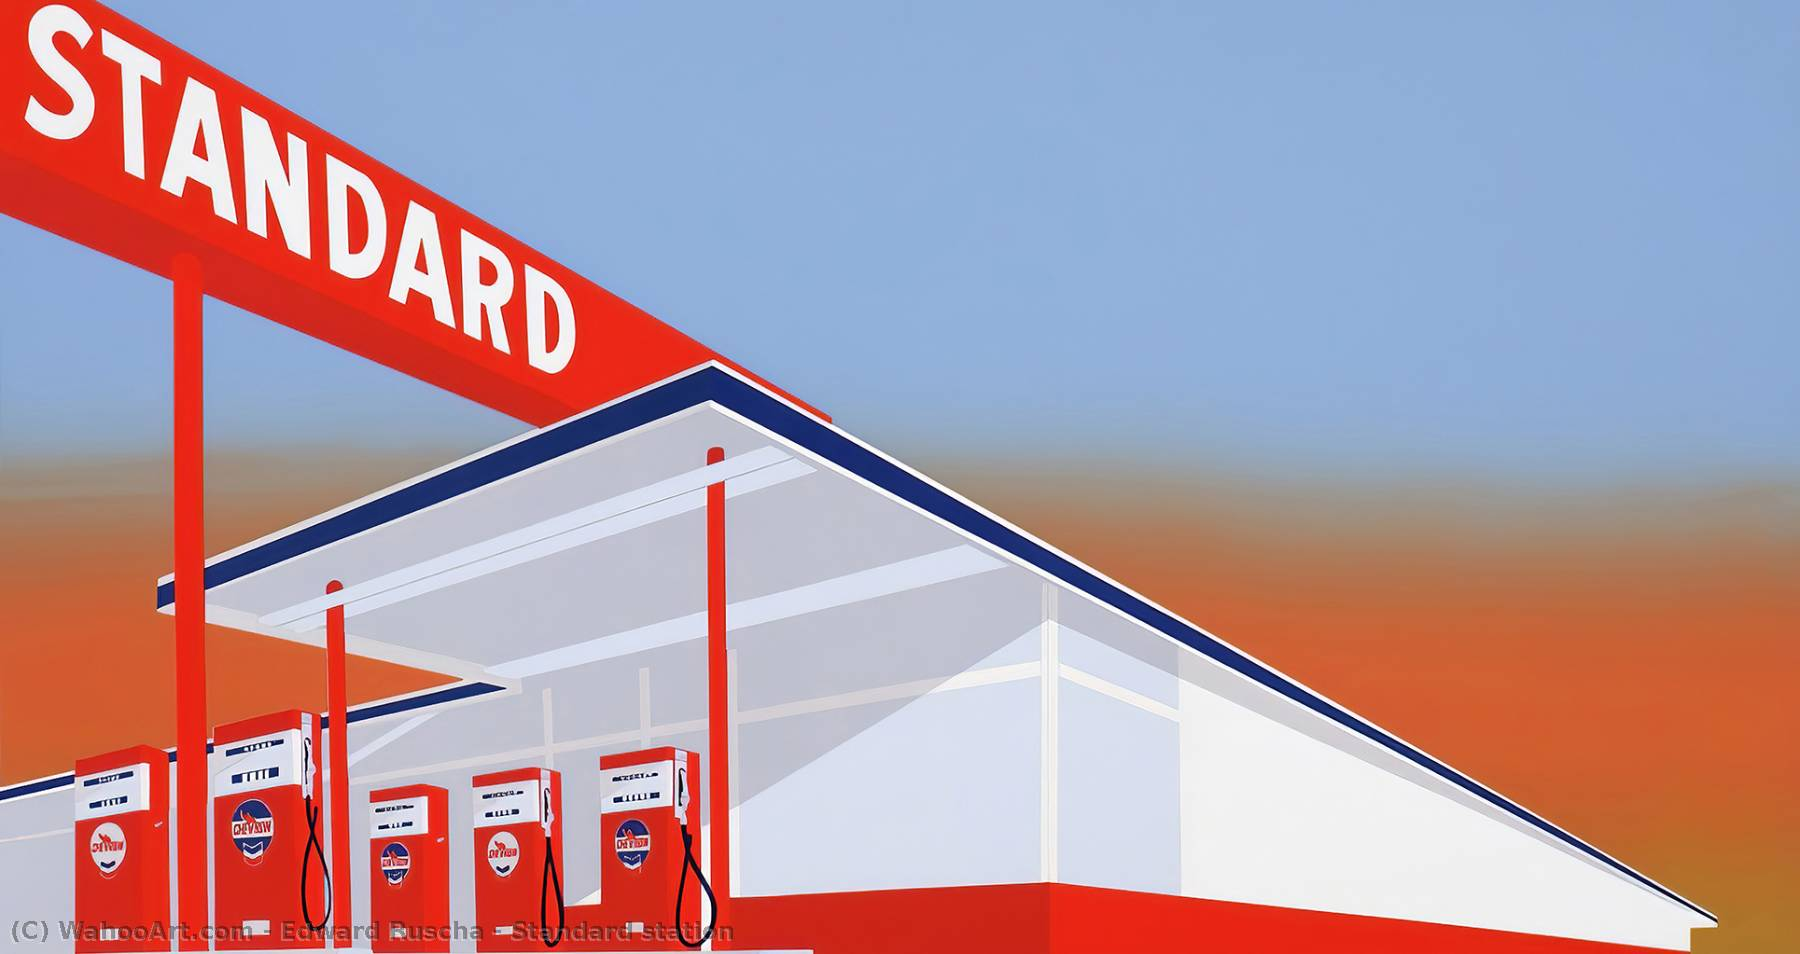 Order Art Reproductions Pop Art : Standard station by Edward Ruscha | BuyPopArt.com